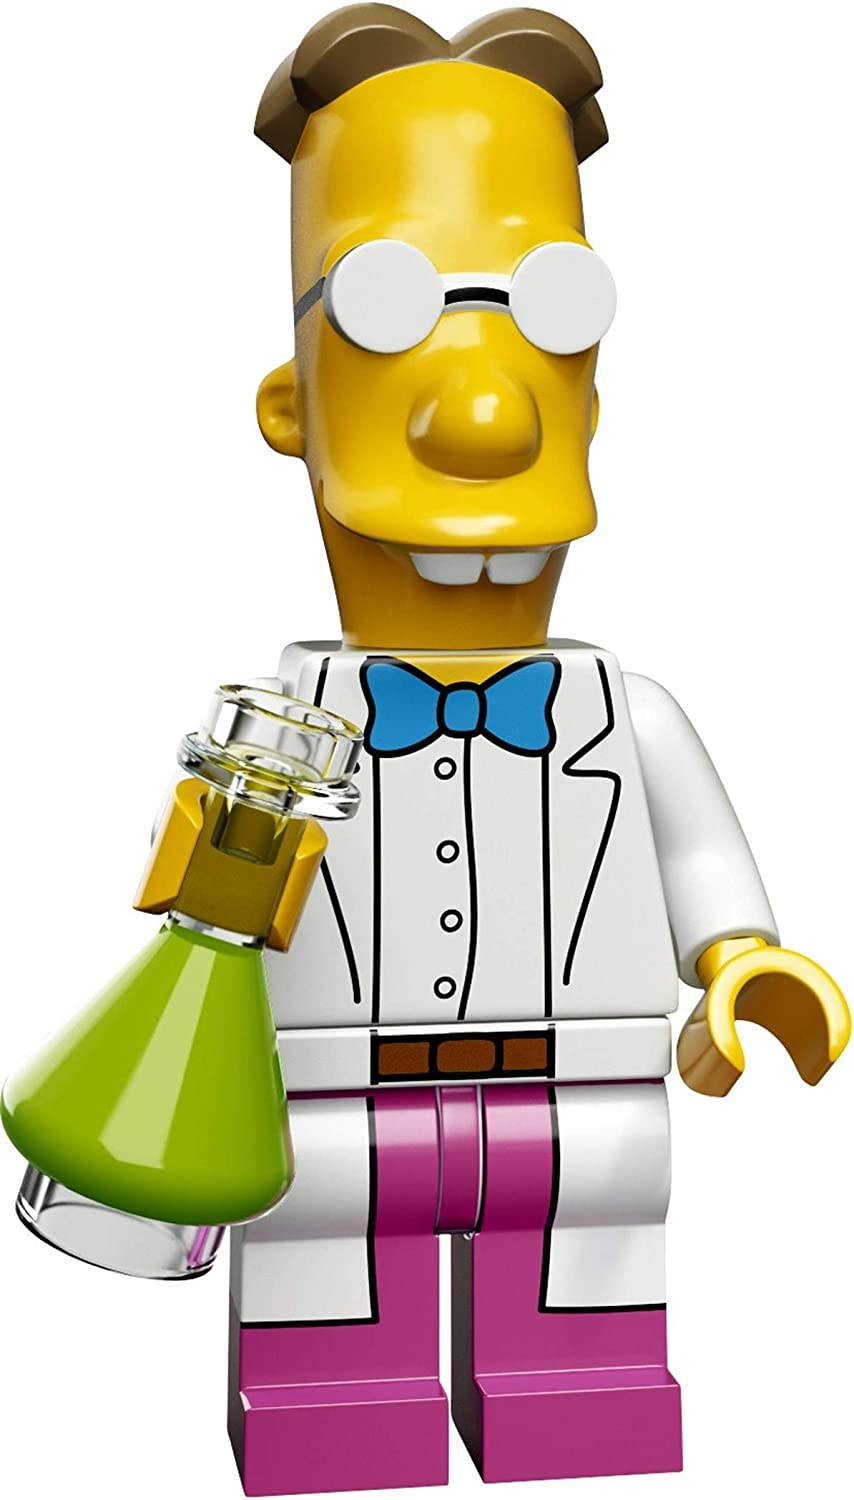 LEGO The Simpsons Series 2 Collectible Minifigure 71009 - Professor Frink